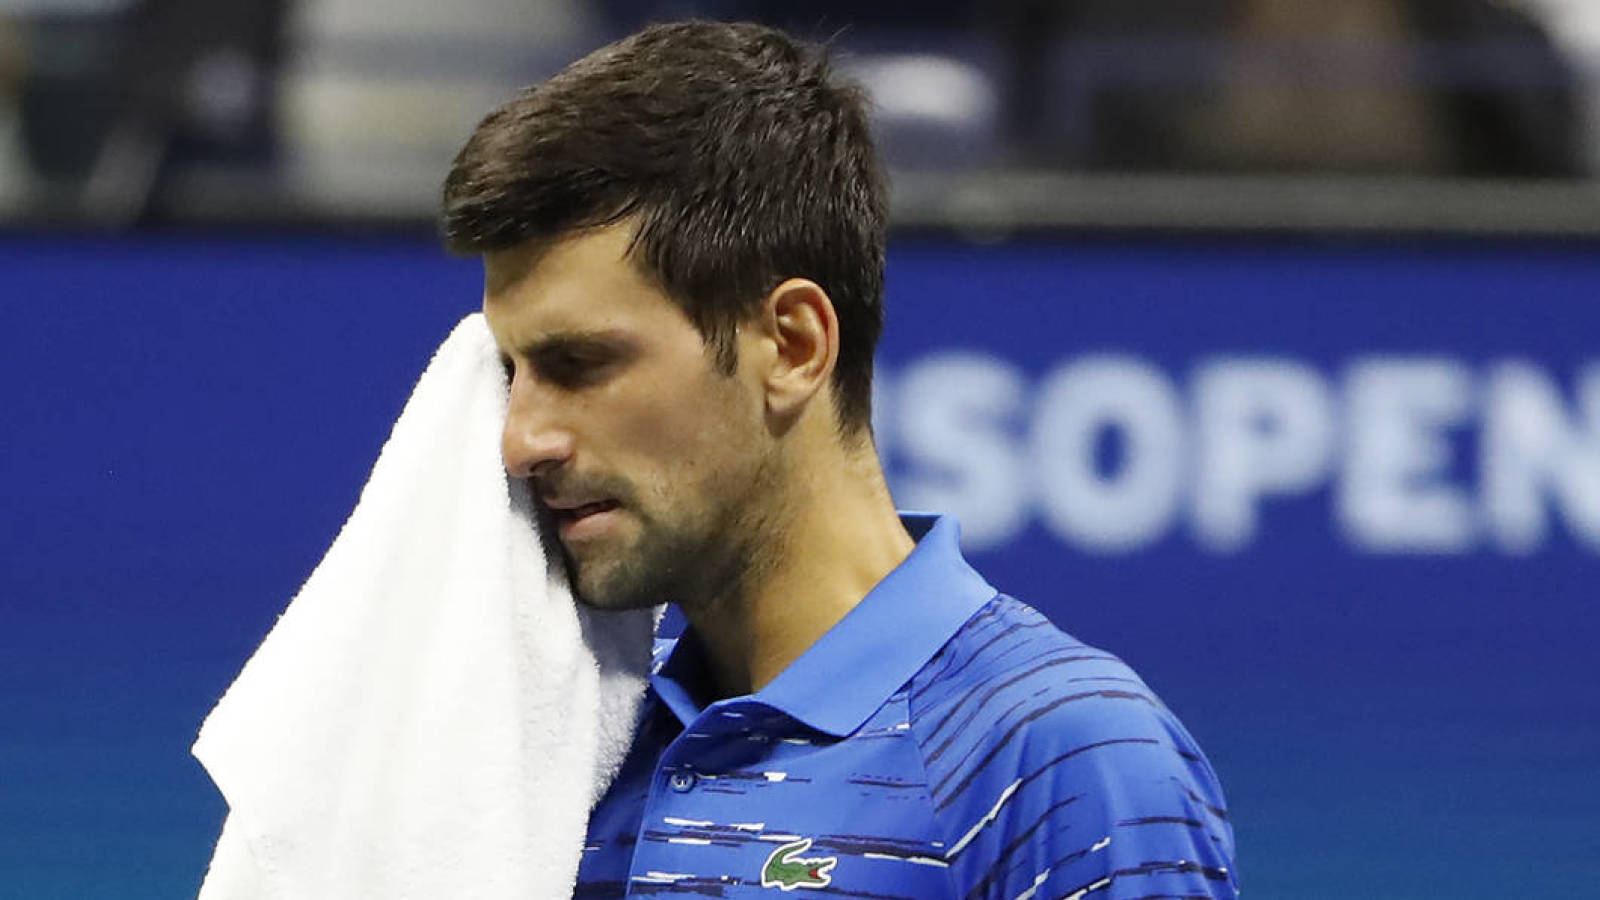 Novak Djokovic S Father Accuses Grigor Dimitrov Of Causing Covid 19 Outbreak At Adria Tour Yardbarker